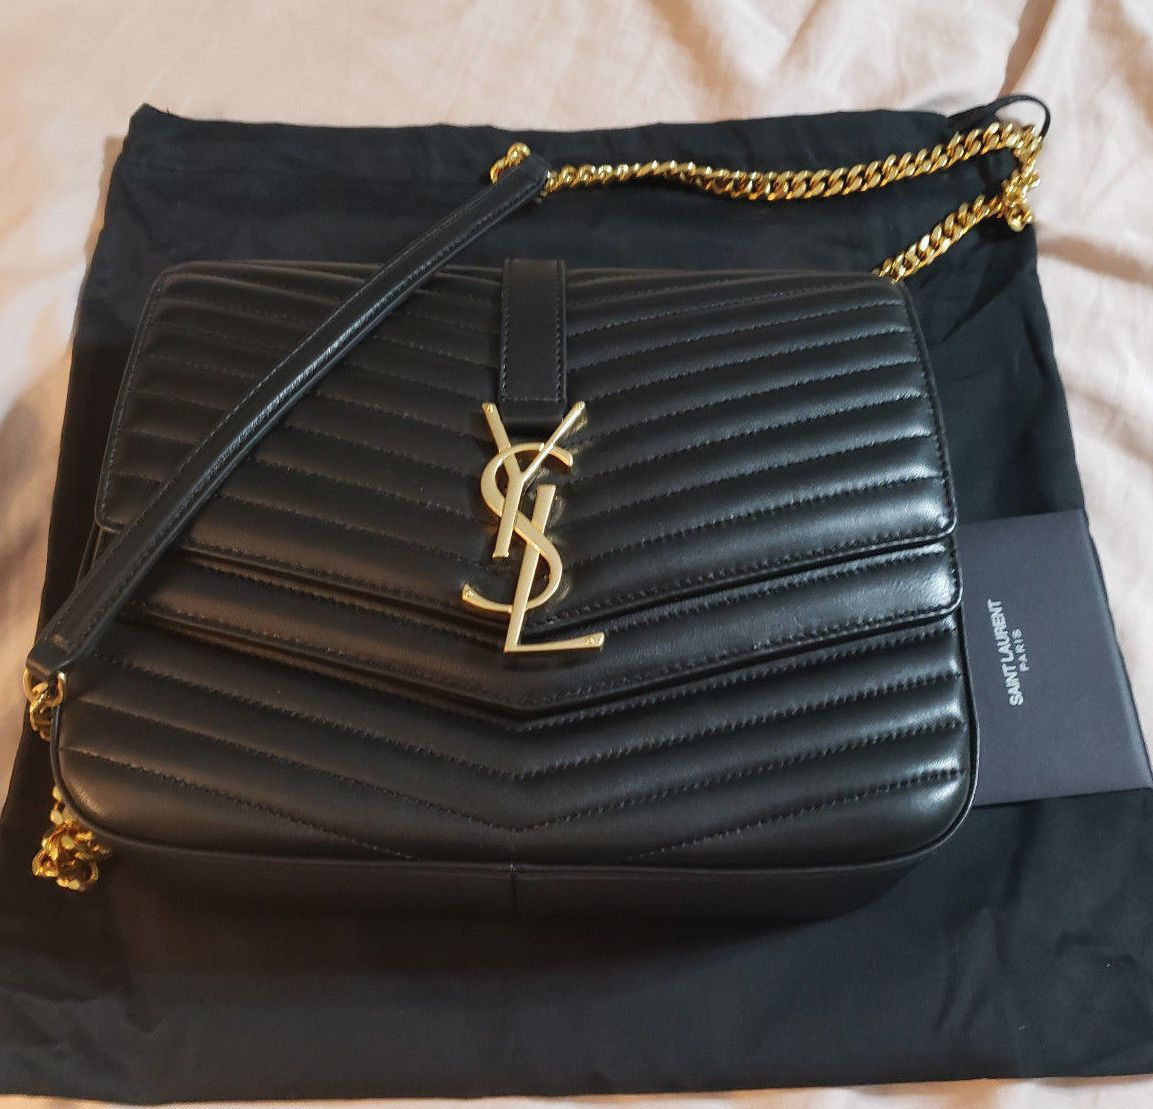 f00aec0118e YSL SAINT LAURENT SULPICE COLLEGE SHOULDER BAG MATELASSE LEATHER BLK ...